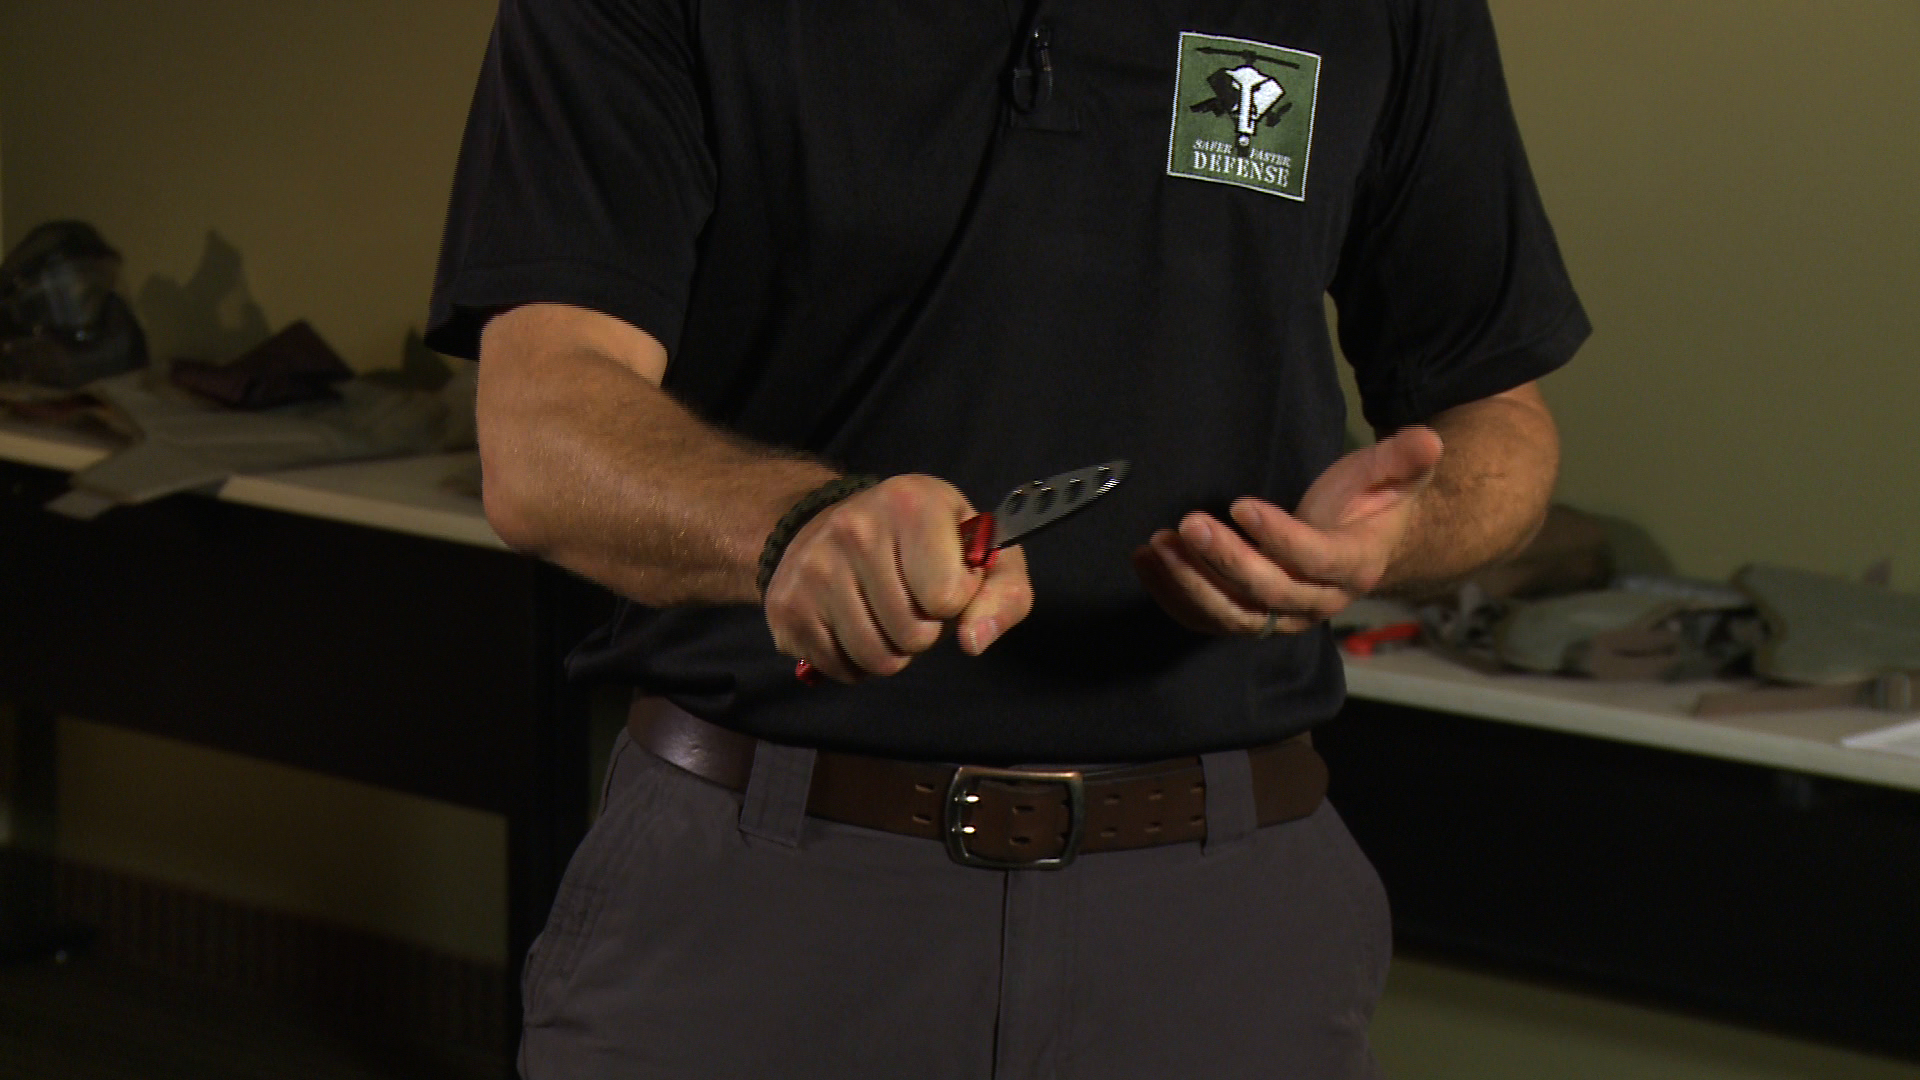 Grip and Stance with a Knife